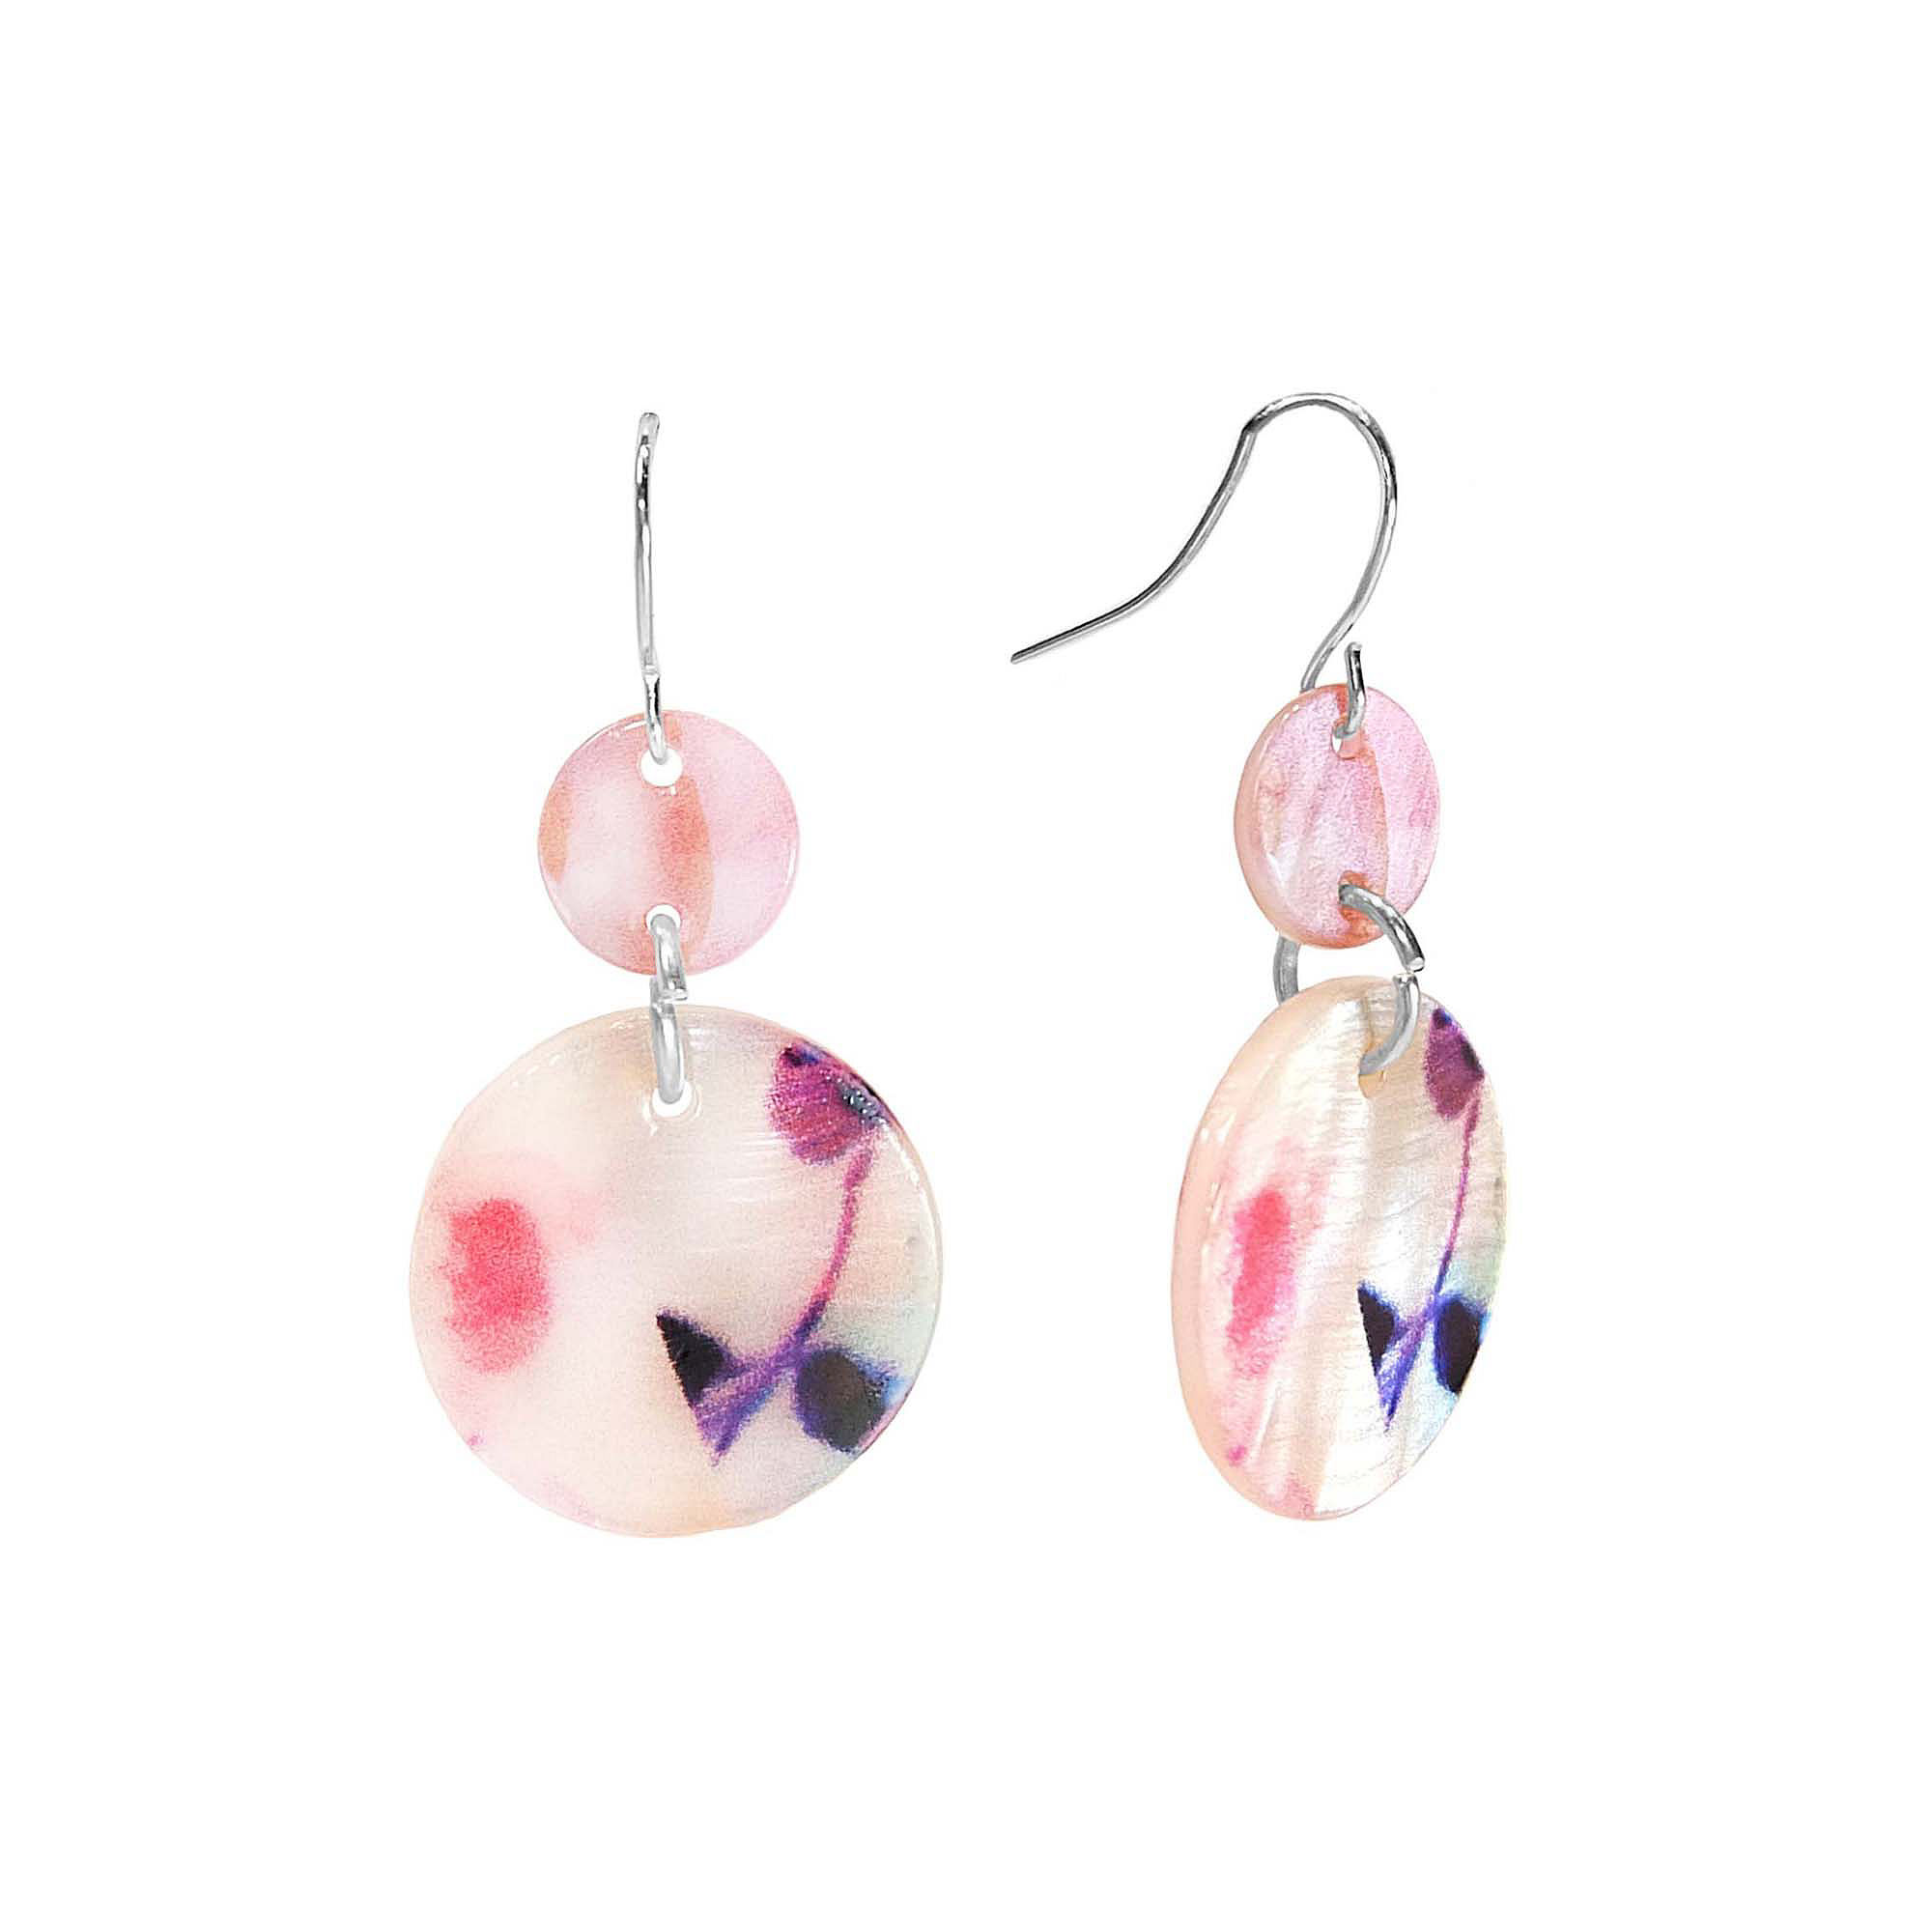 Studio By Carol Dauplaise Silver-Tone Pink Double Disc Drop Earrings